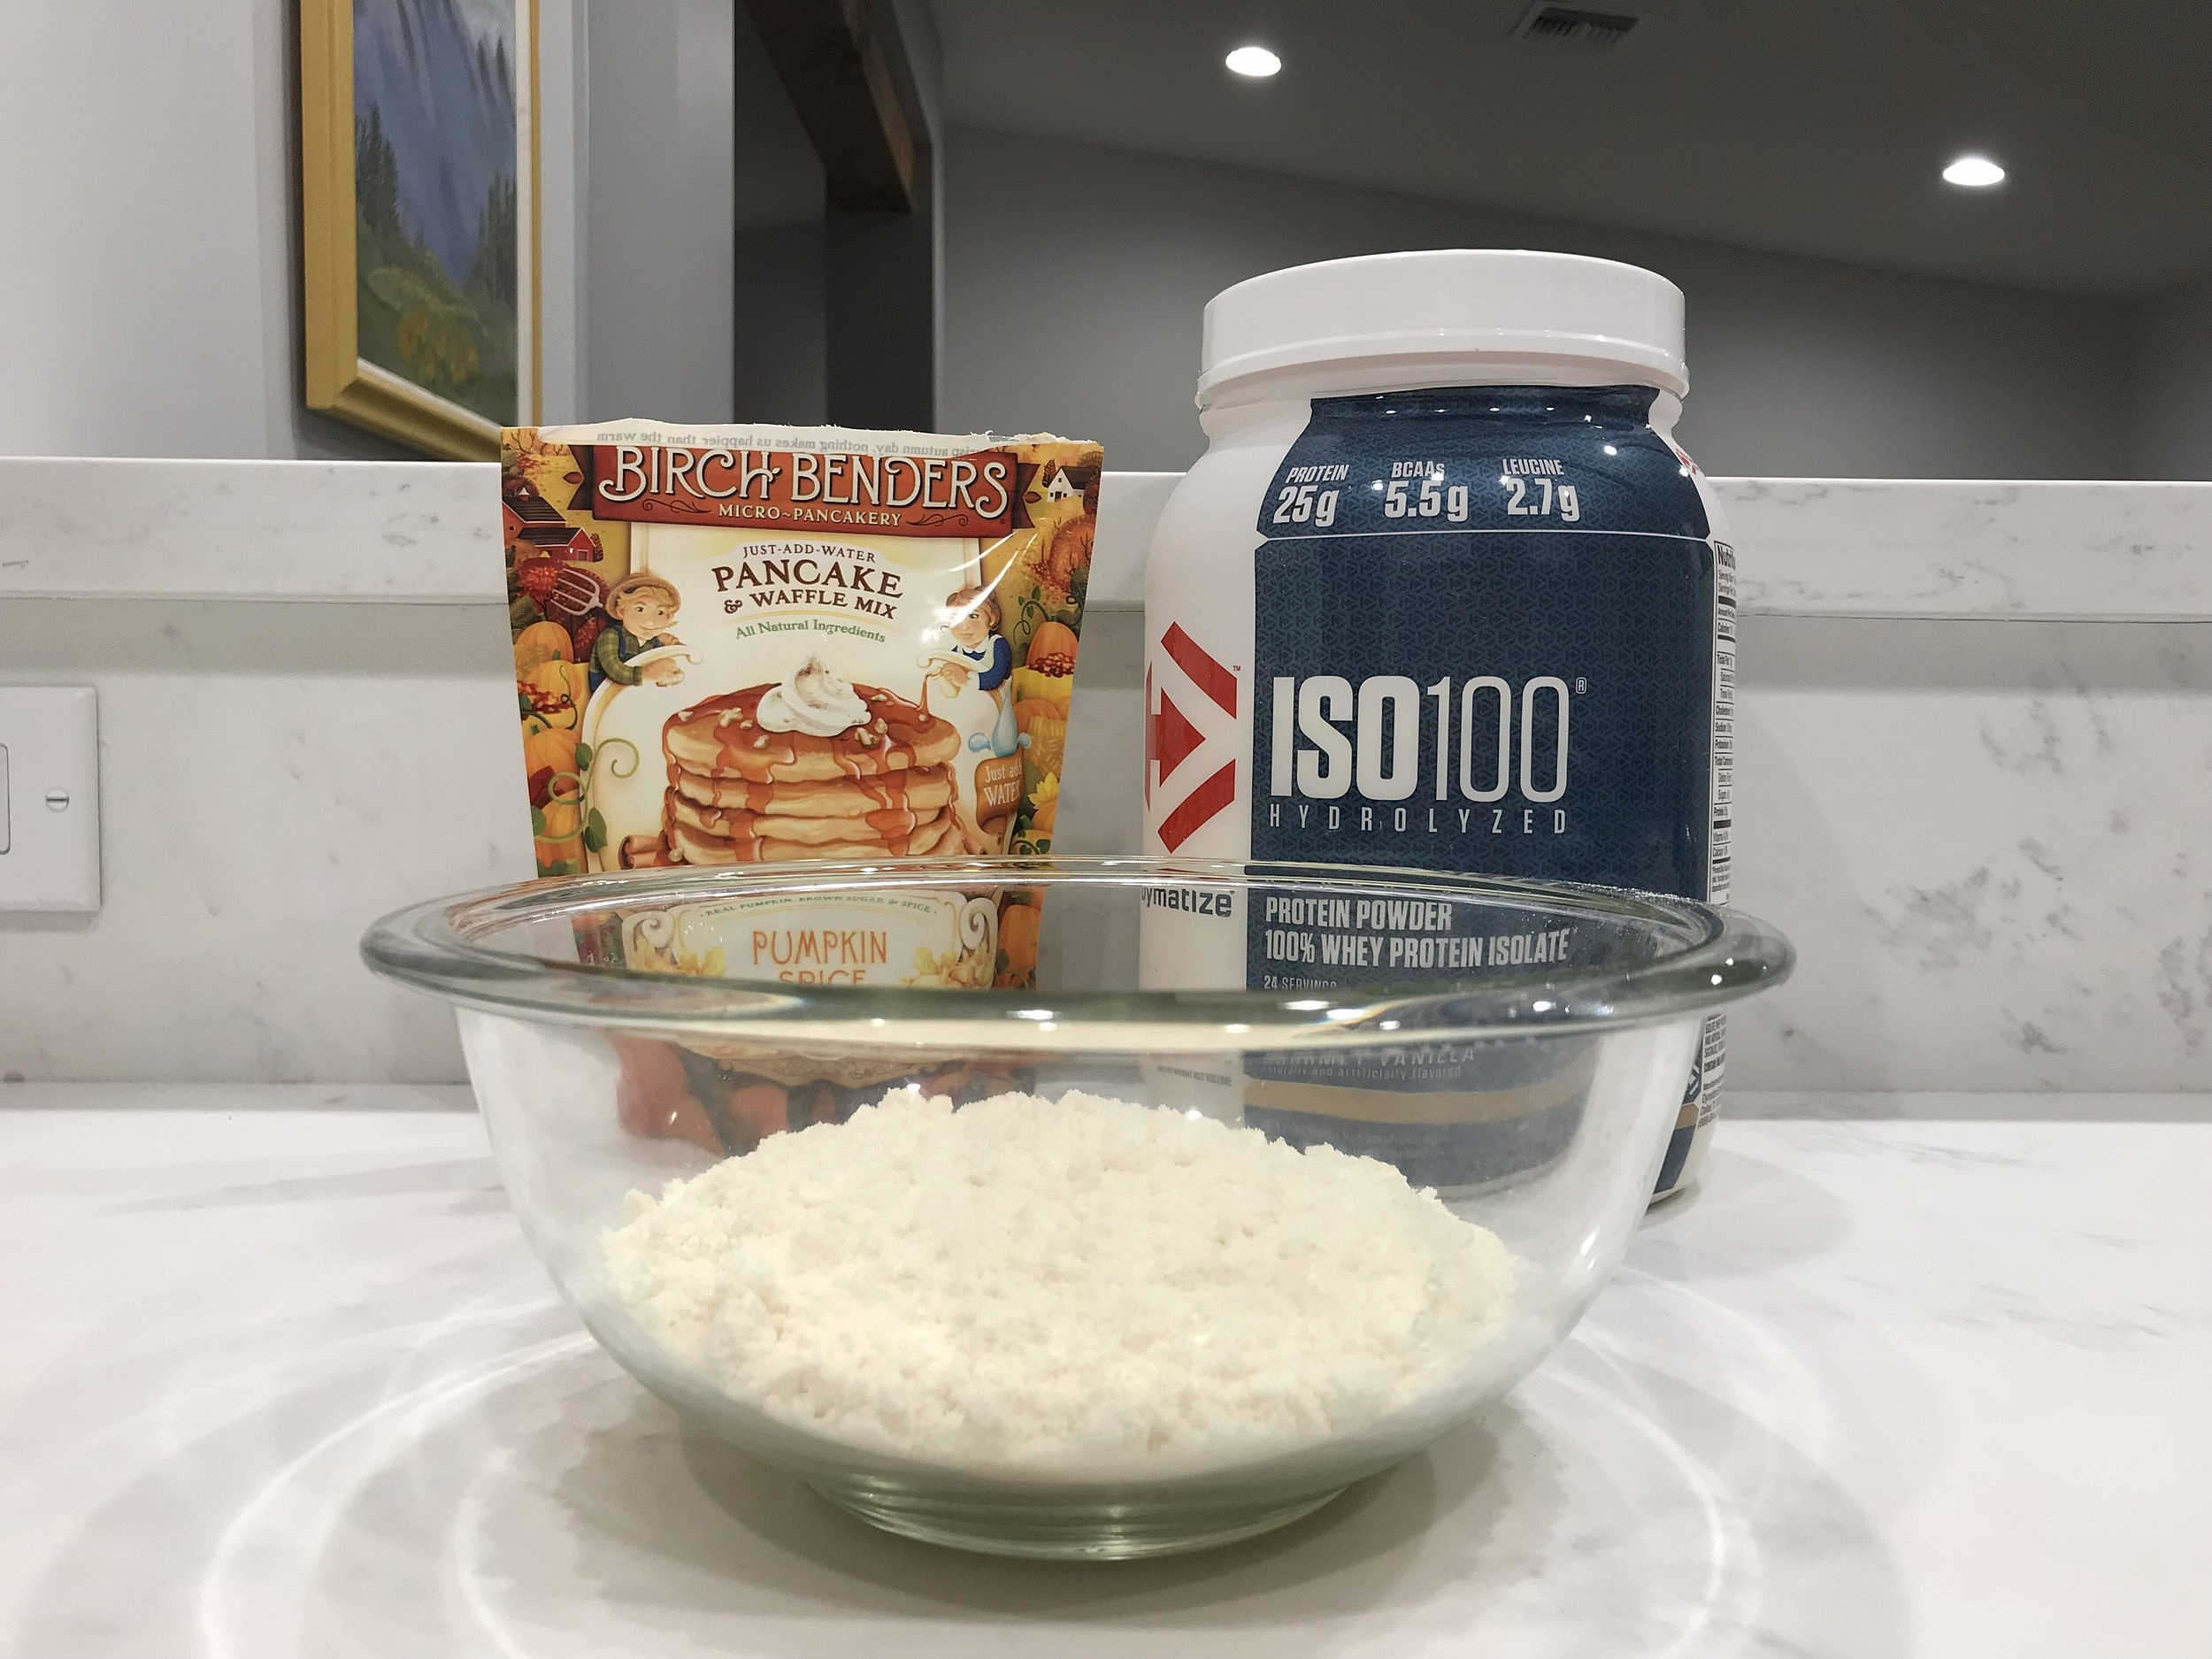 All you need to make yourself some home cooked pancakes in minutes!